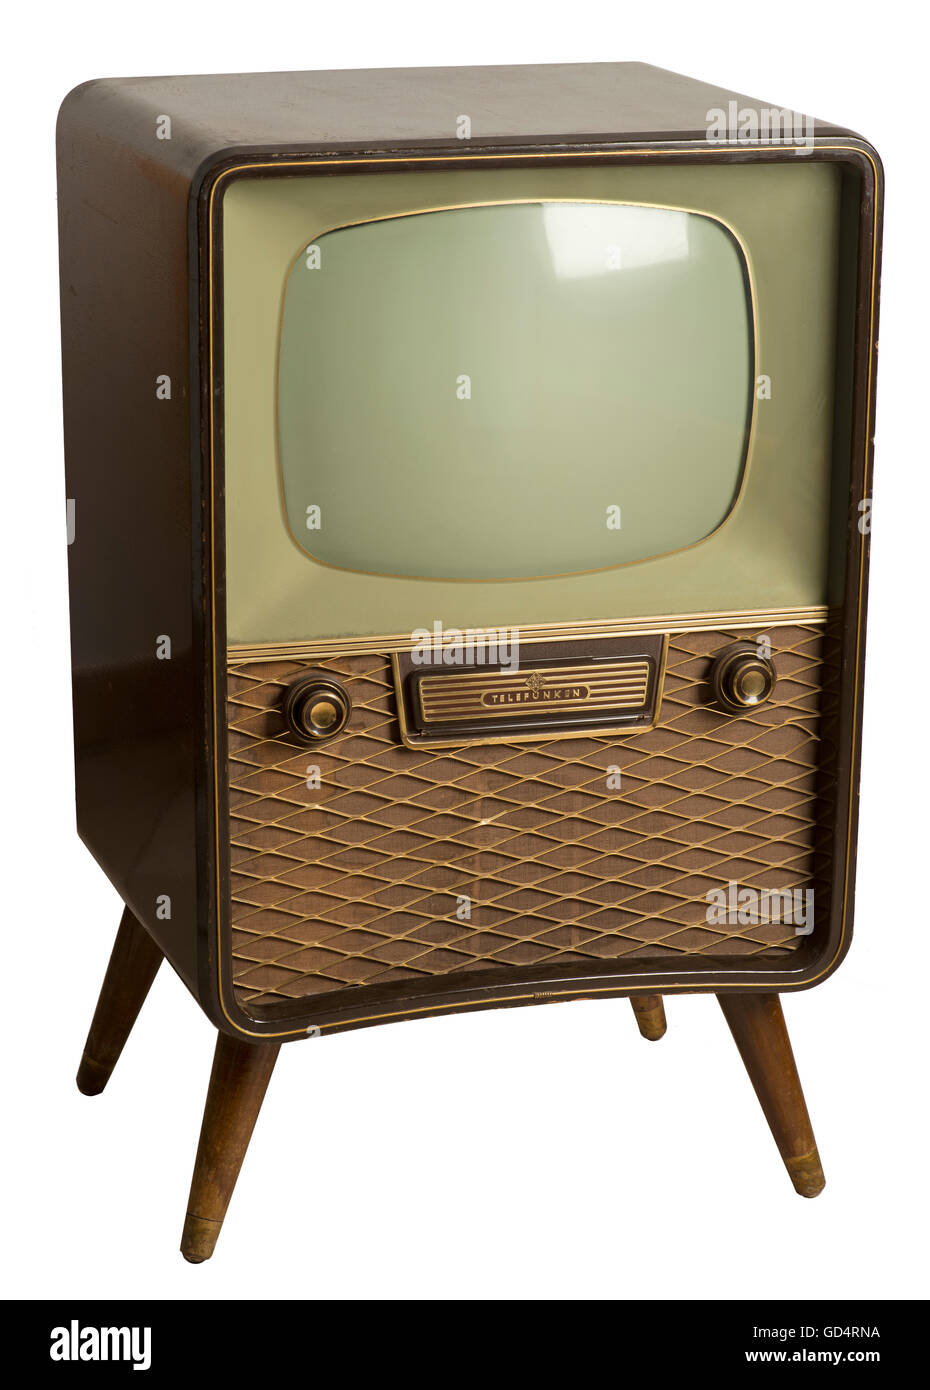 broadcast, television, Telefunken FE 12 / 43 St, Germany, 1956, Additional-Rights-Clearences-NA - Stock Image